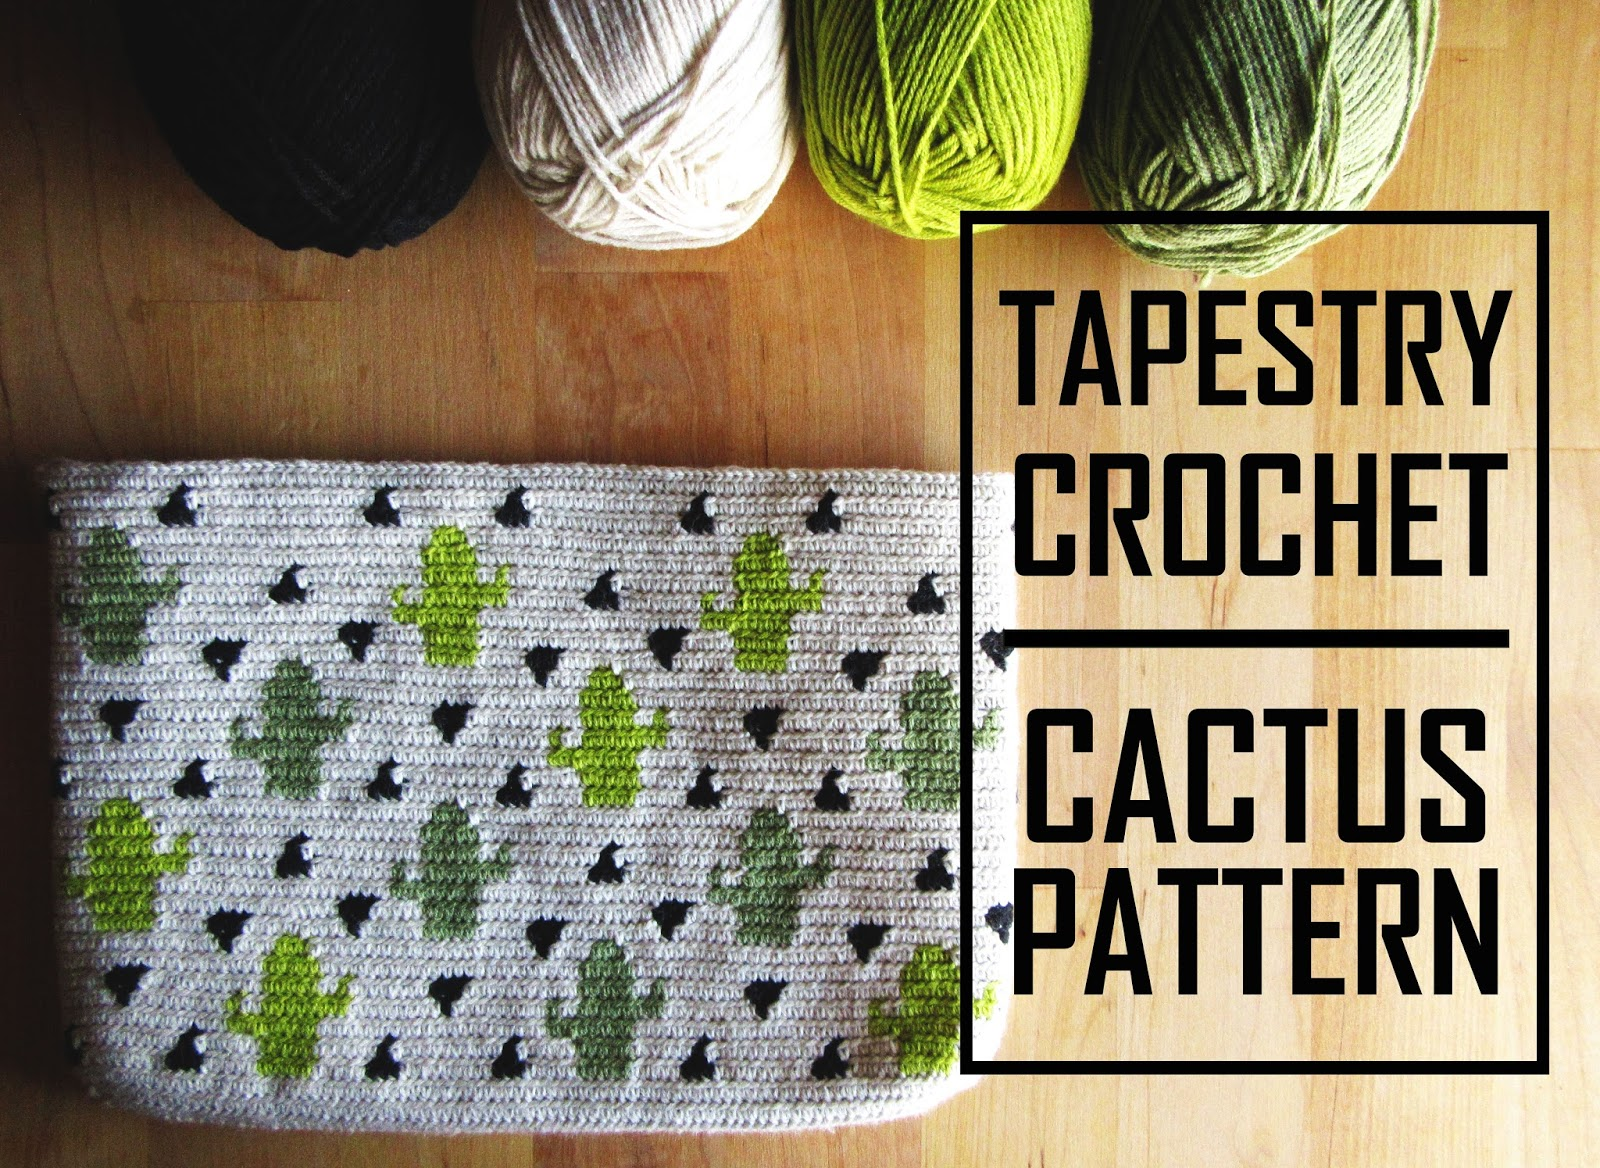 The story of a mulberry: Tapestry Crochet Cactus Pattern